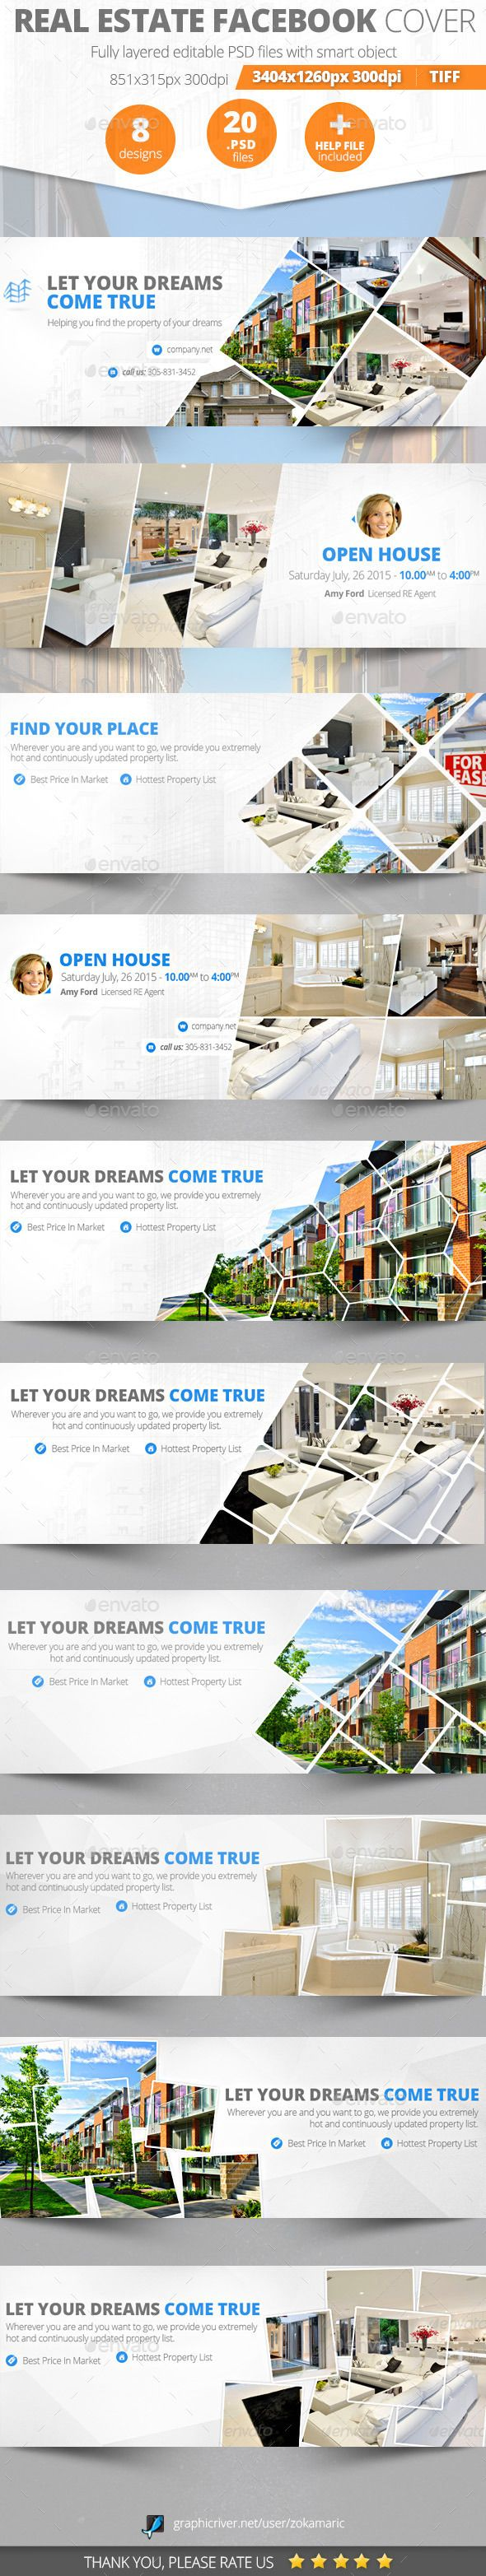 Real Estate Facebook Cover